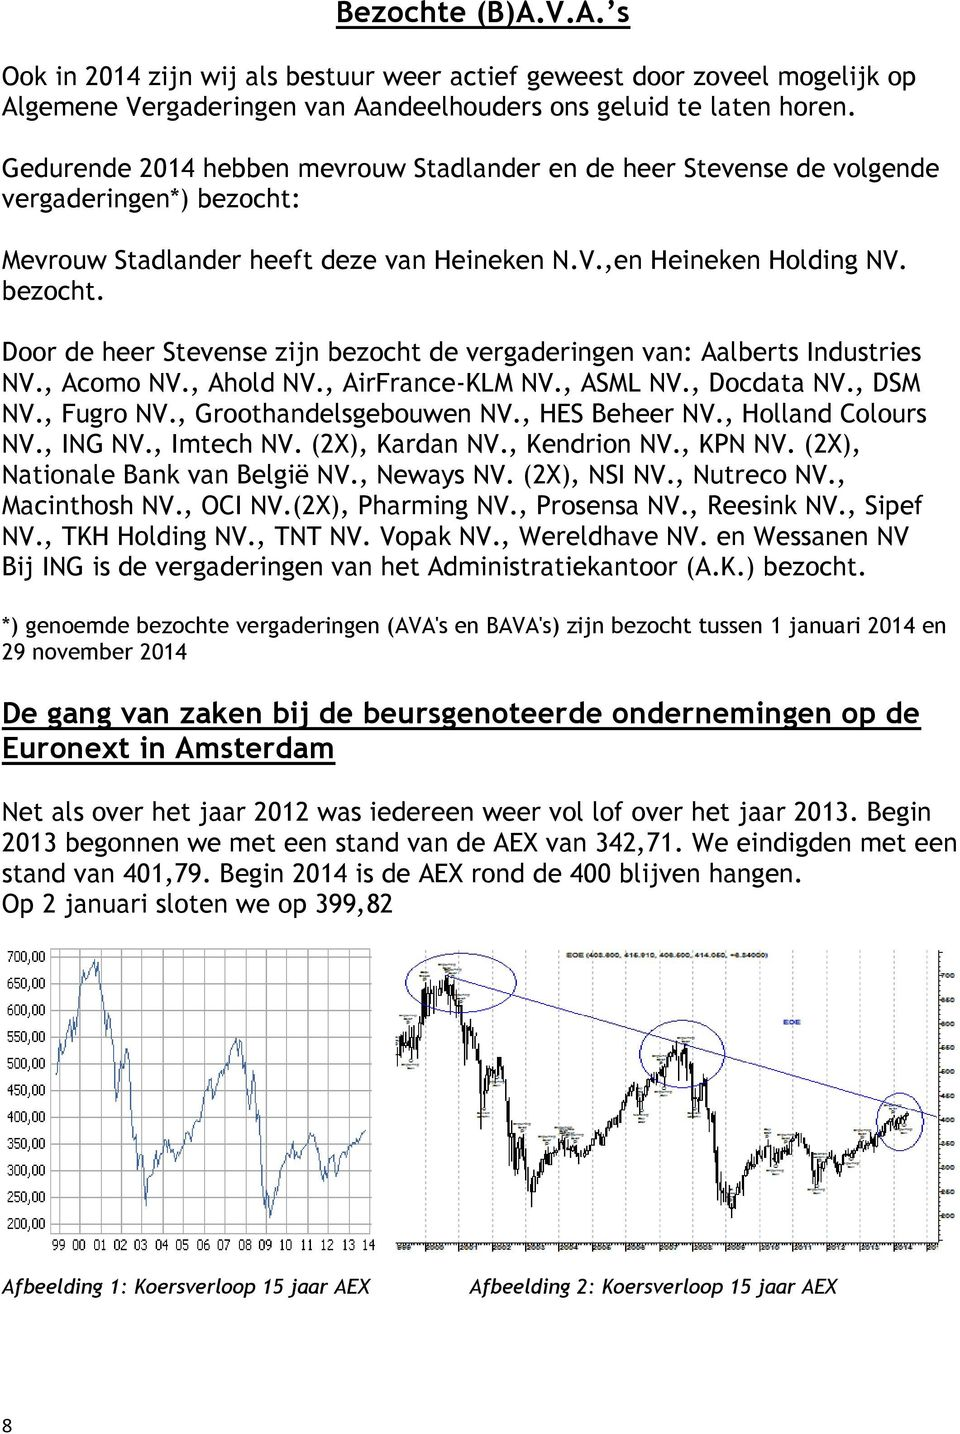 , Acomo NV., Ahold NV., AirFrance-KLM NV., ASML NV., Docdata NV., DSM NV., Fugro NV., Groothandelsgebouwen NV., HES Beheer NV., Holland Colours NV., ING NV., Imtech NV. (2X), Kardan NV., Kendrion NV.